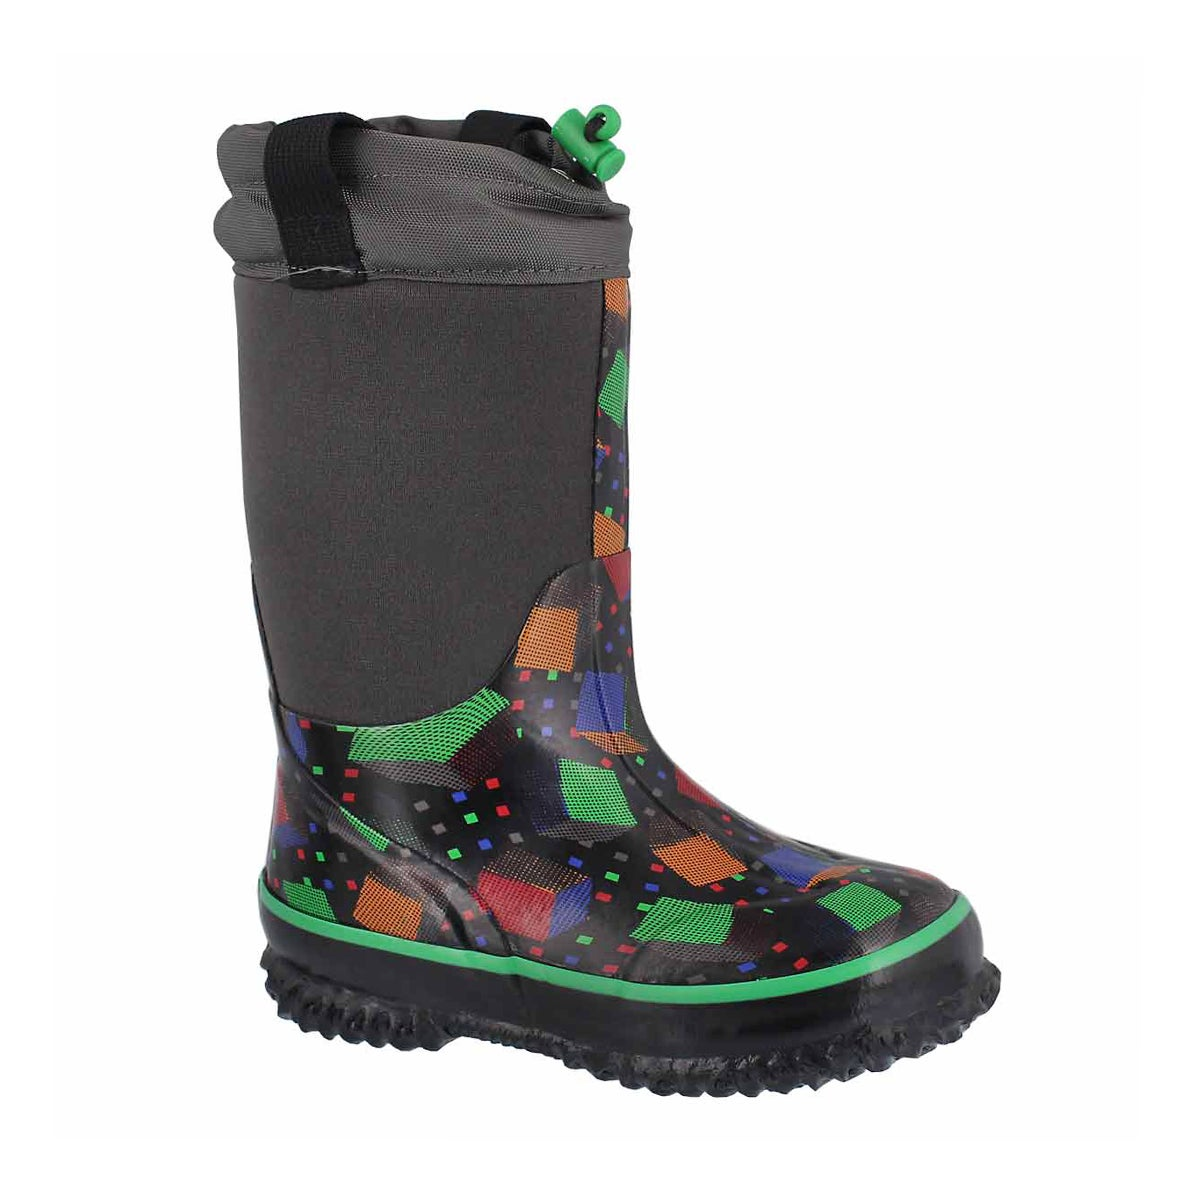 Boys' CUBES black waterproof pull on winter boots